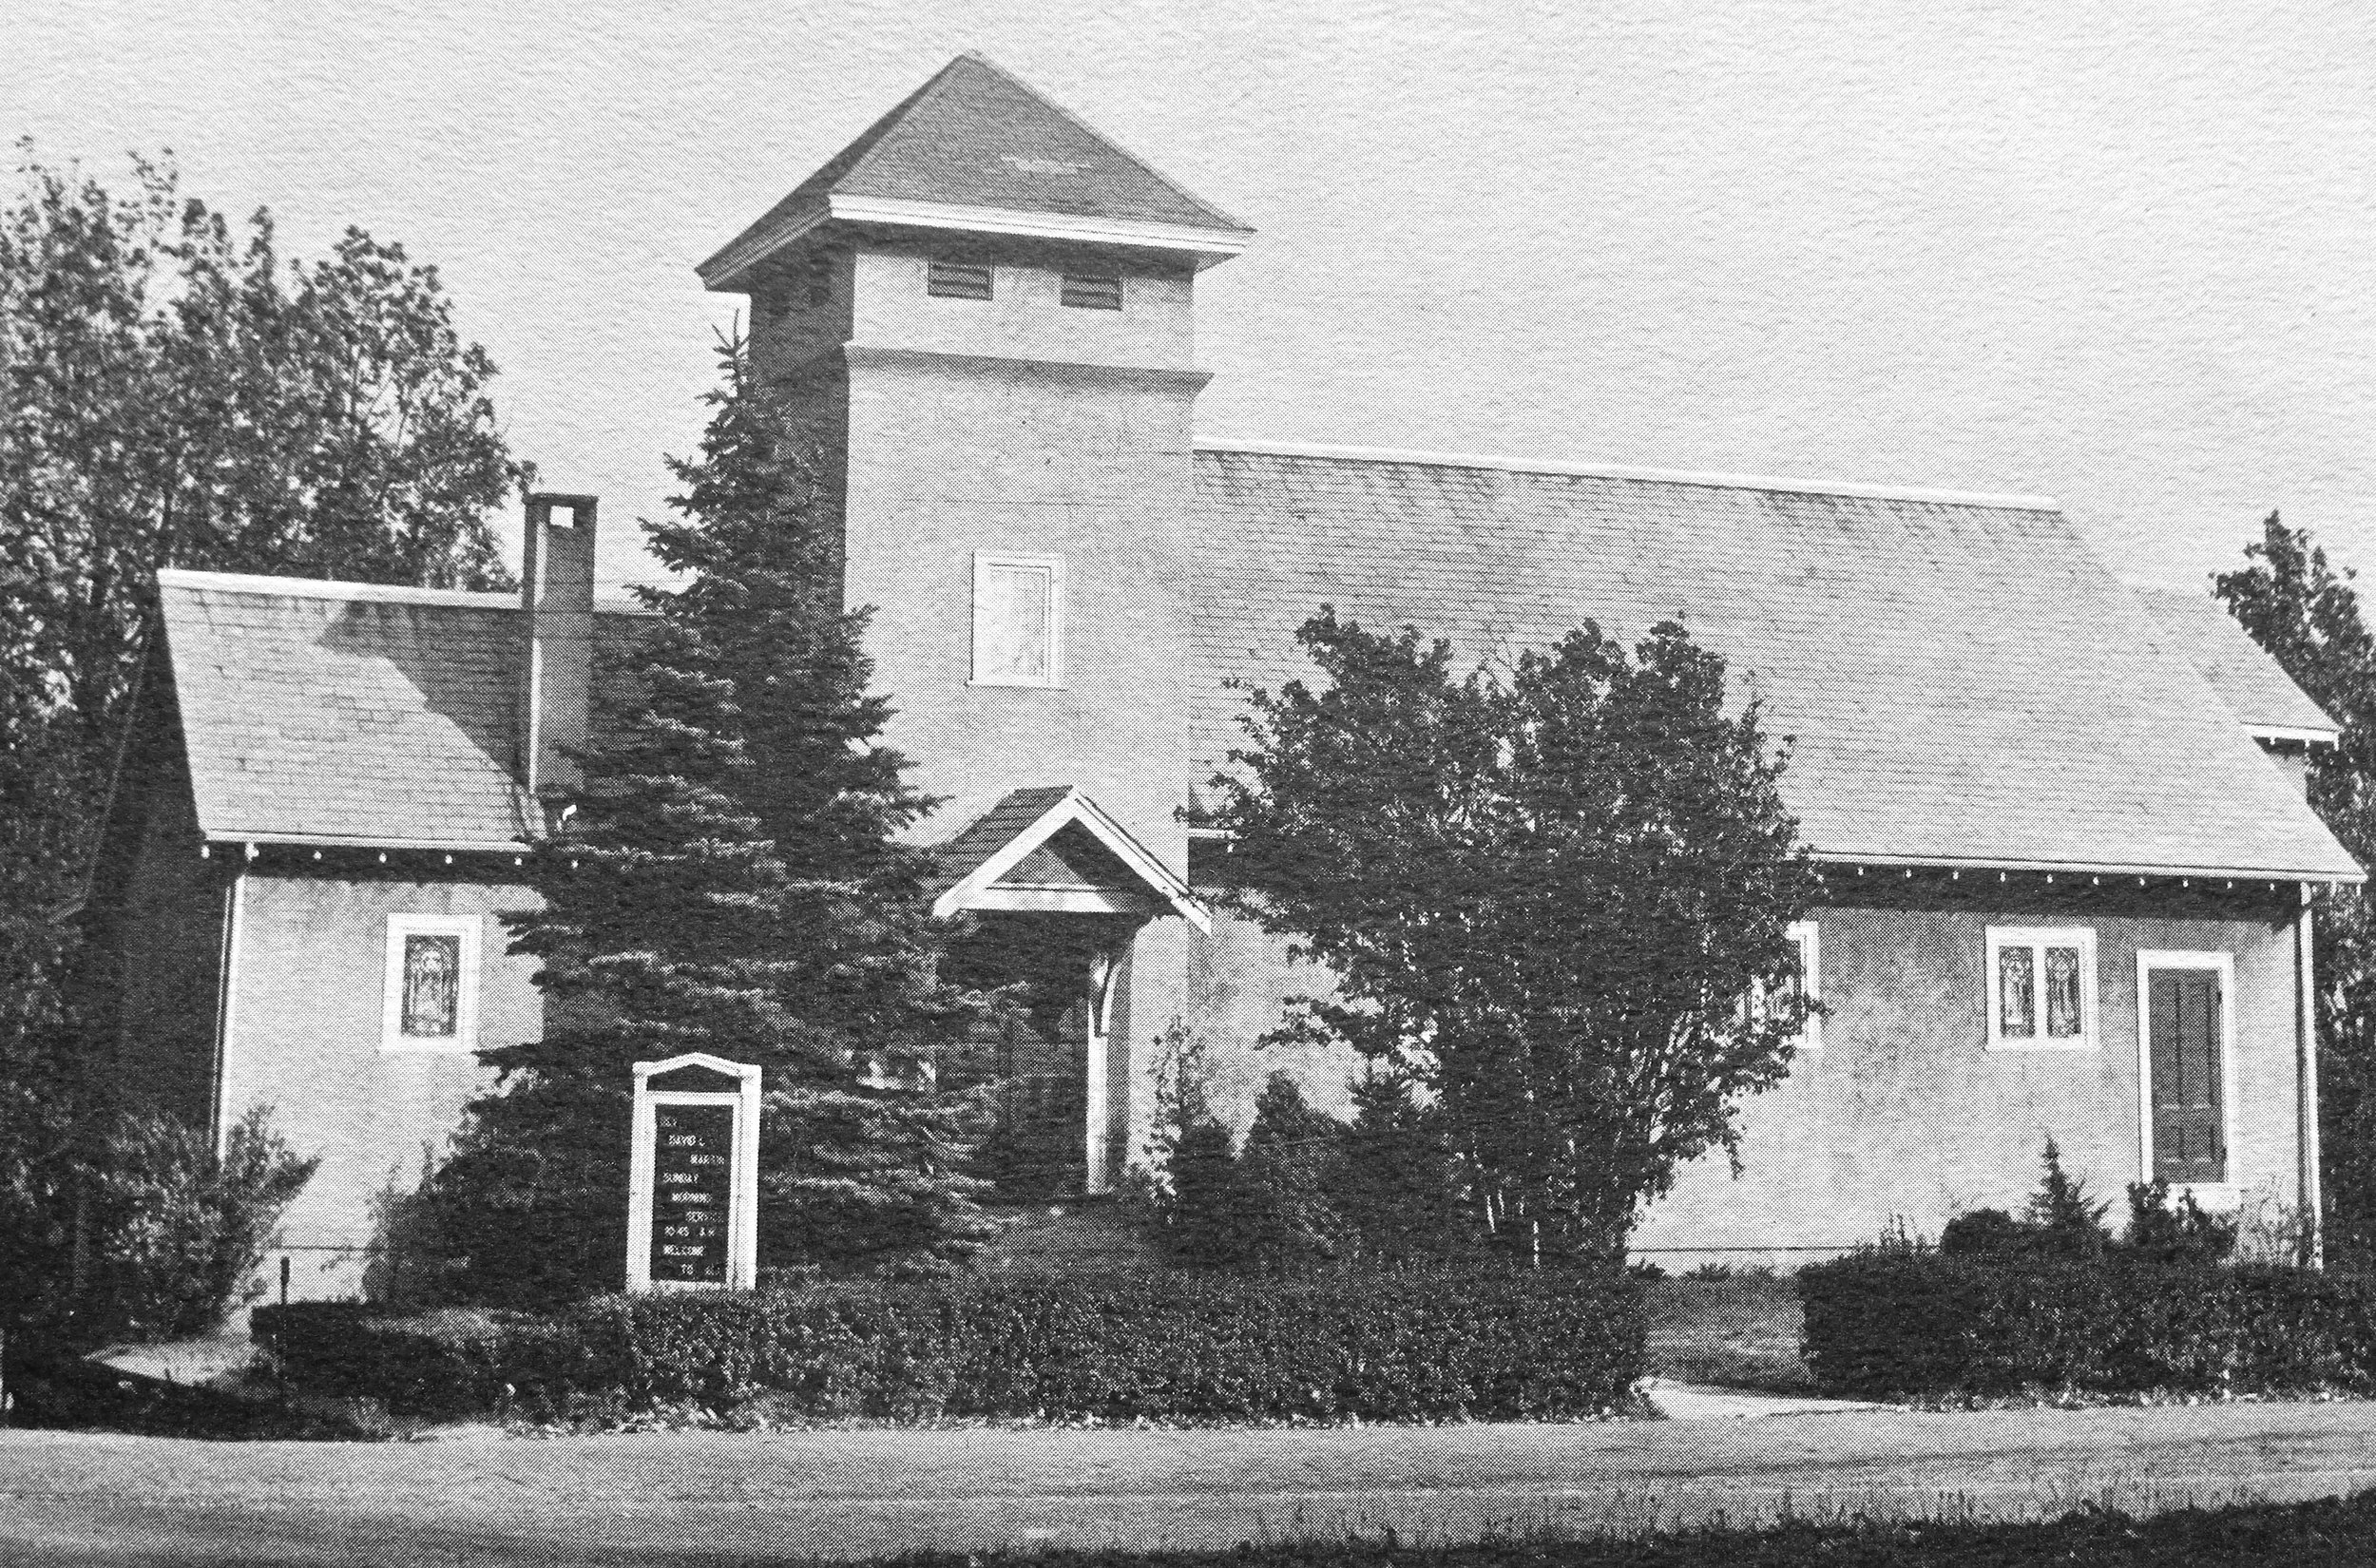 - The updated Church building as it looked in 1937. The footprint and layout of the building are the same. About this same time, the church built its parsonage next to the church.